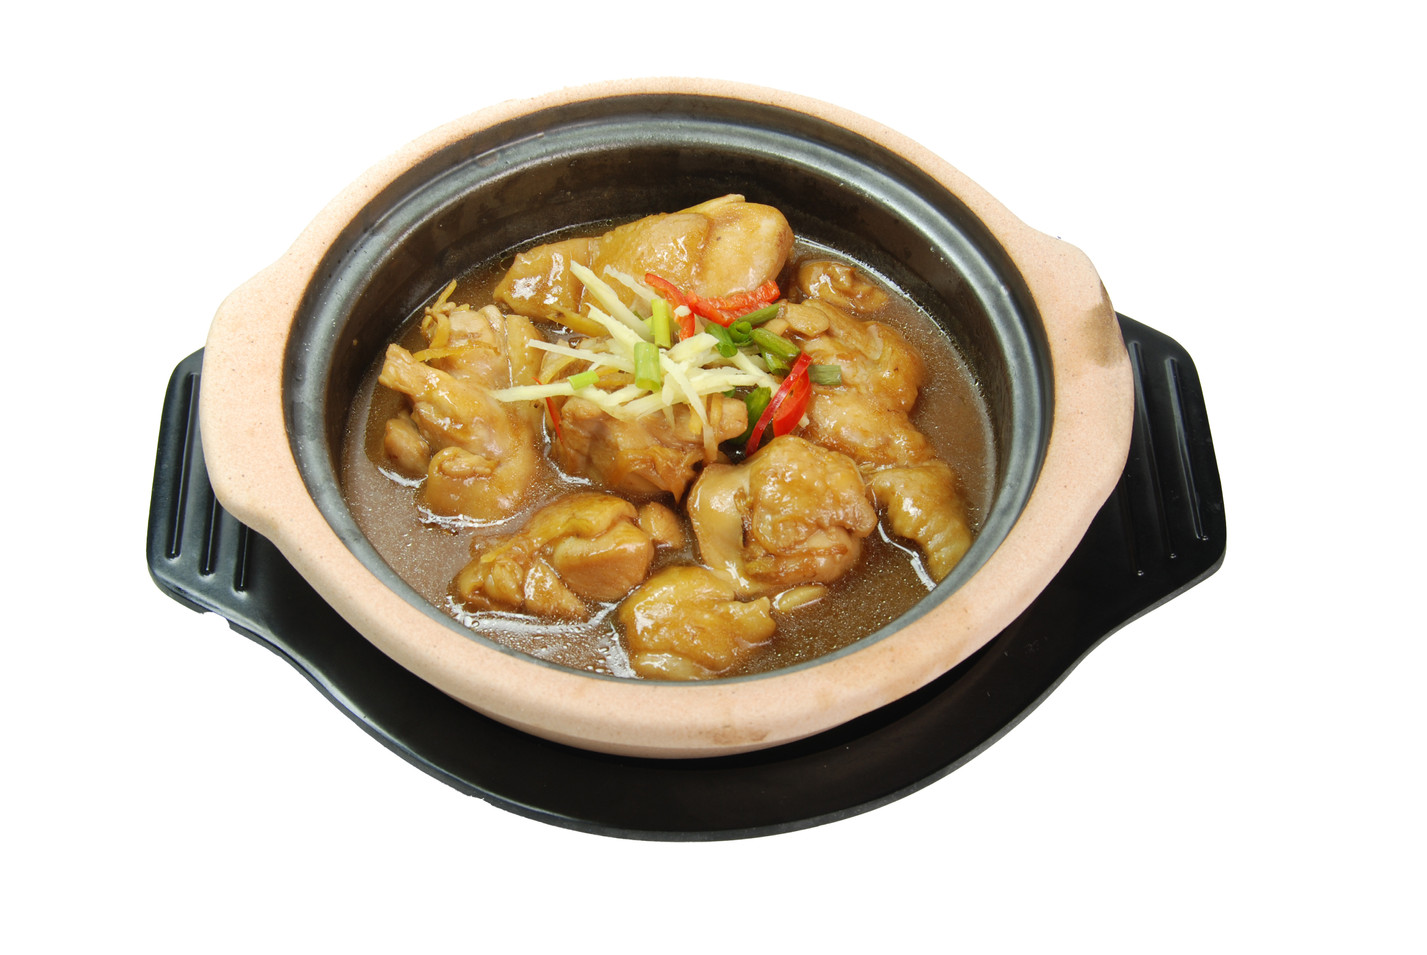 Claypot Sesame Oil Rice 砂煲麻油鸡饭